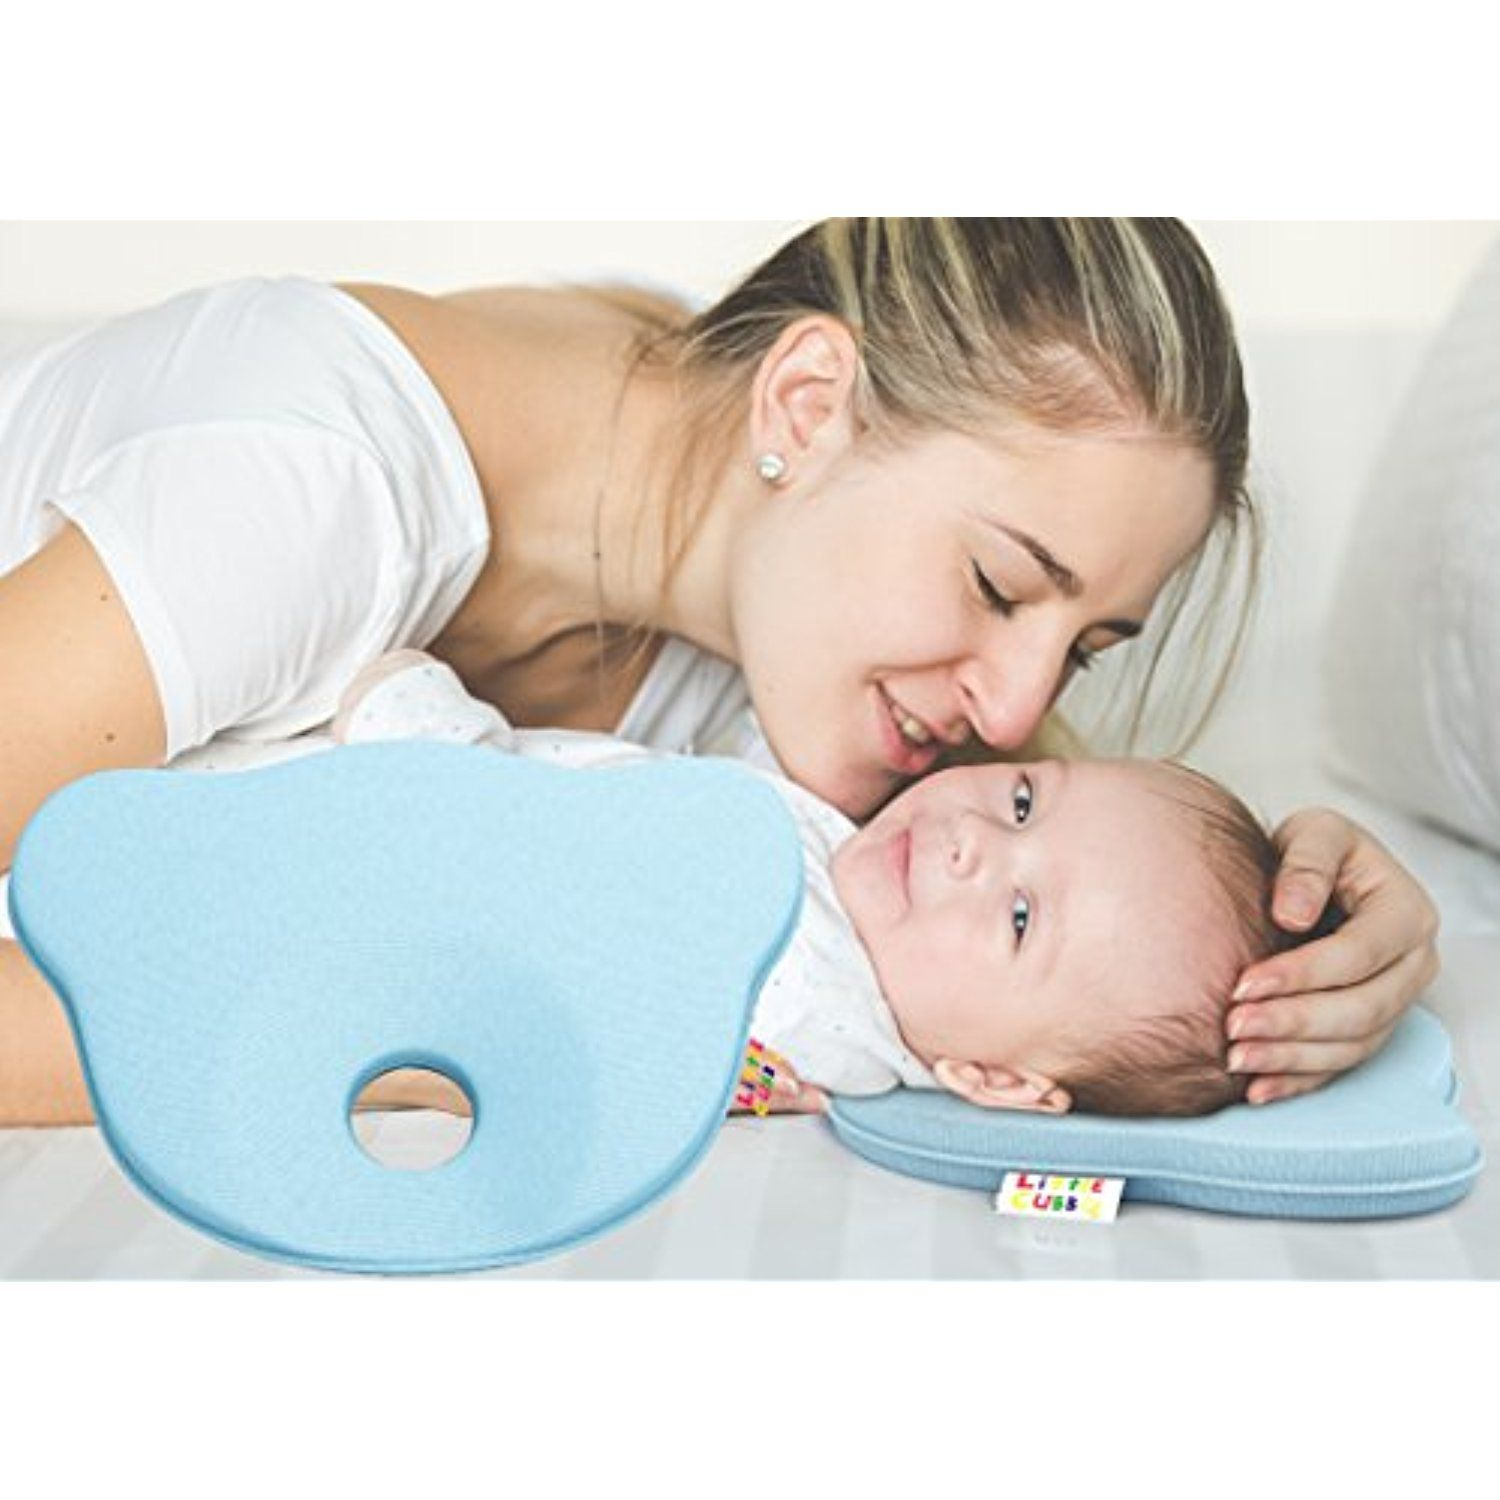 Baby pillow for flat head syndrome 100 organic cotton